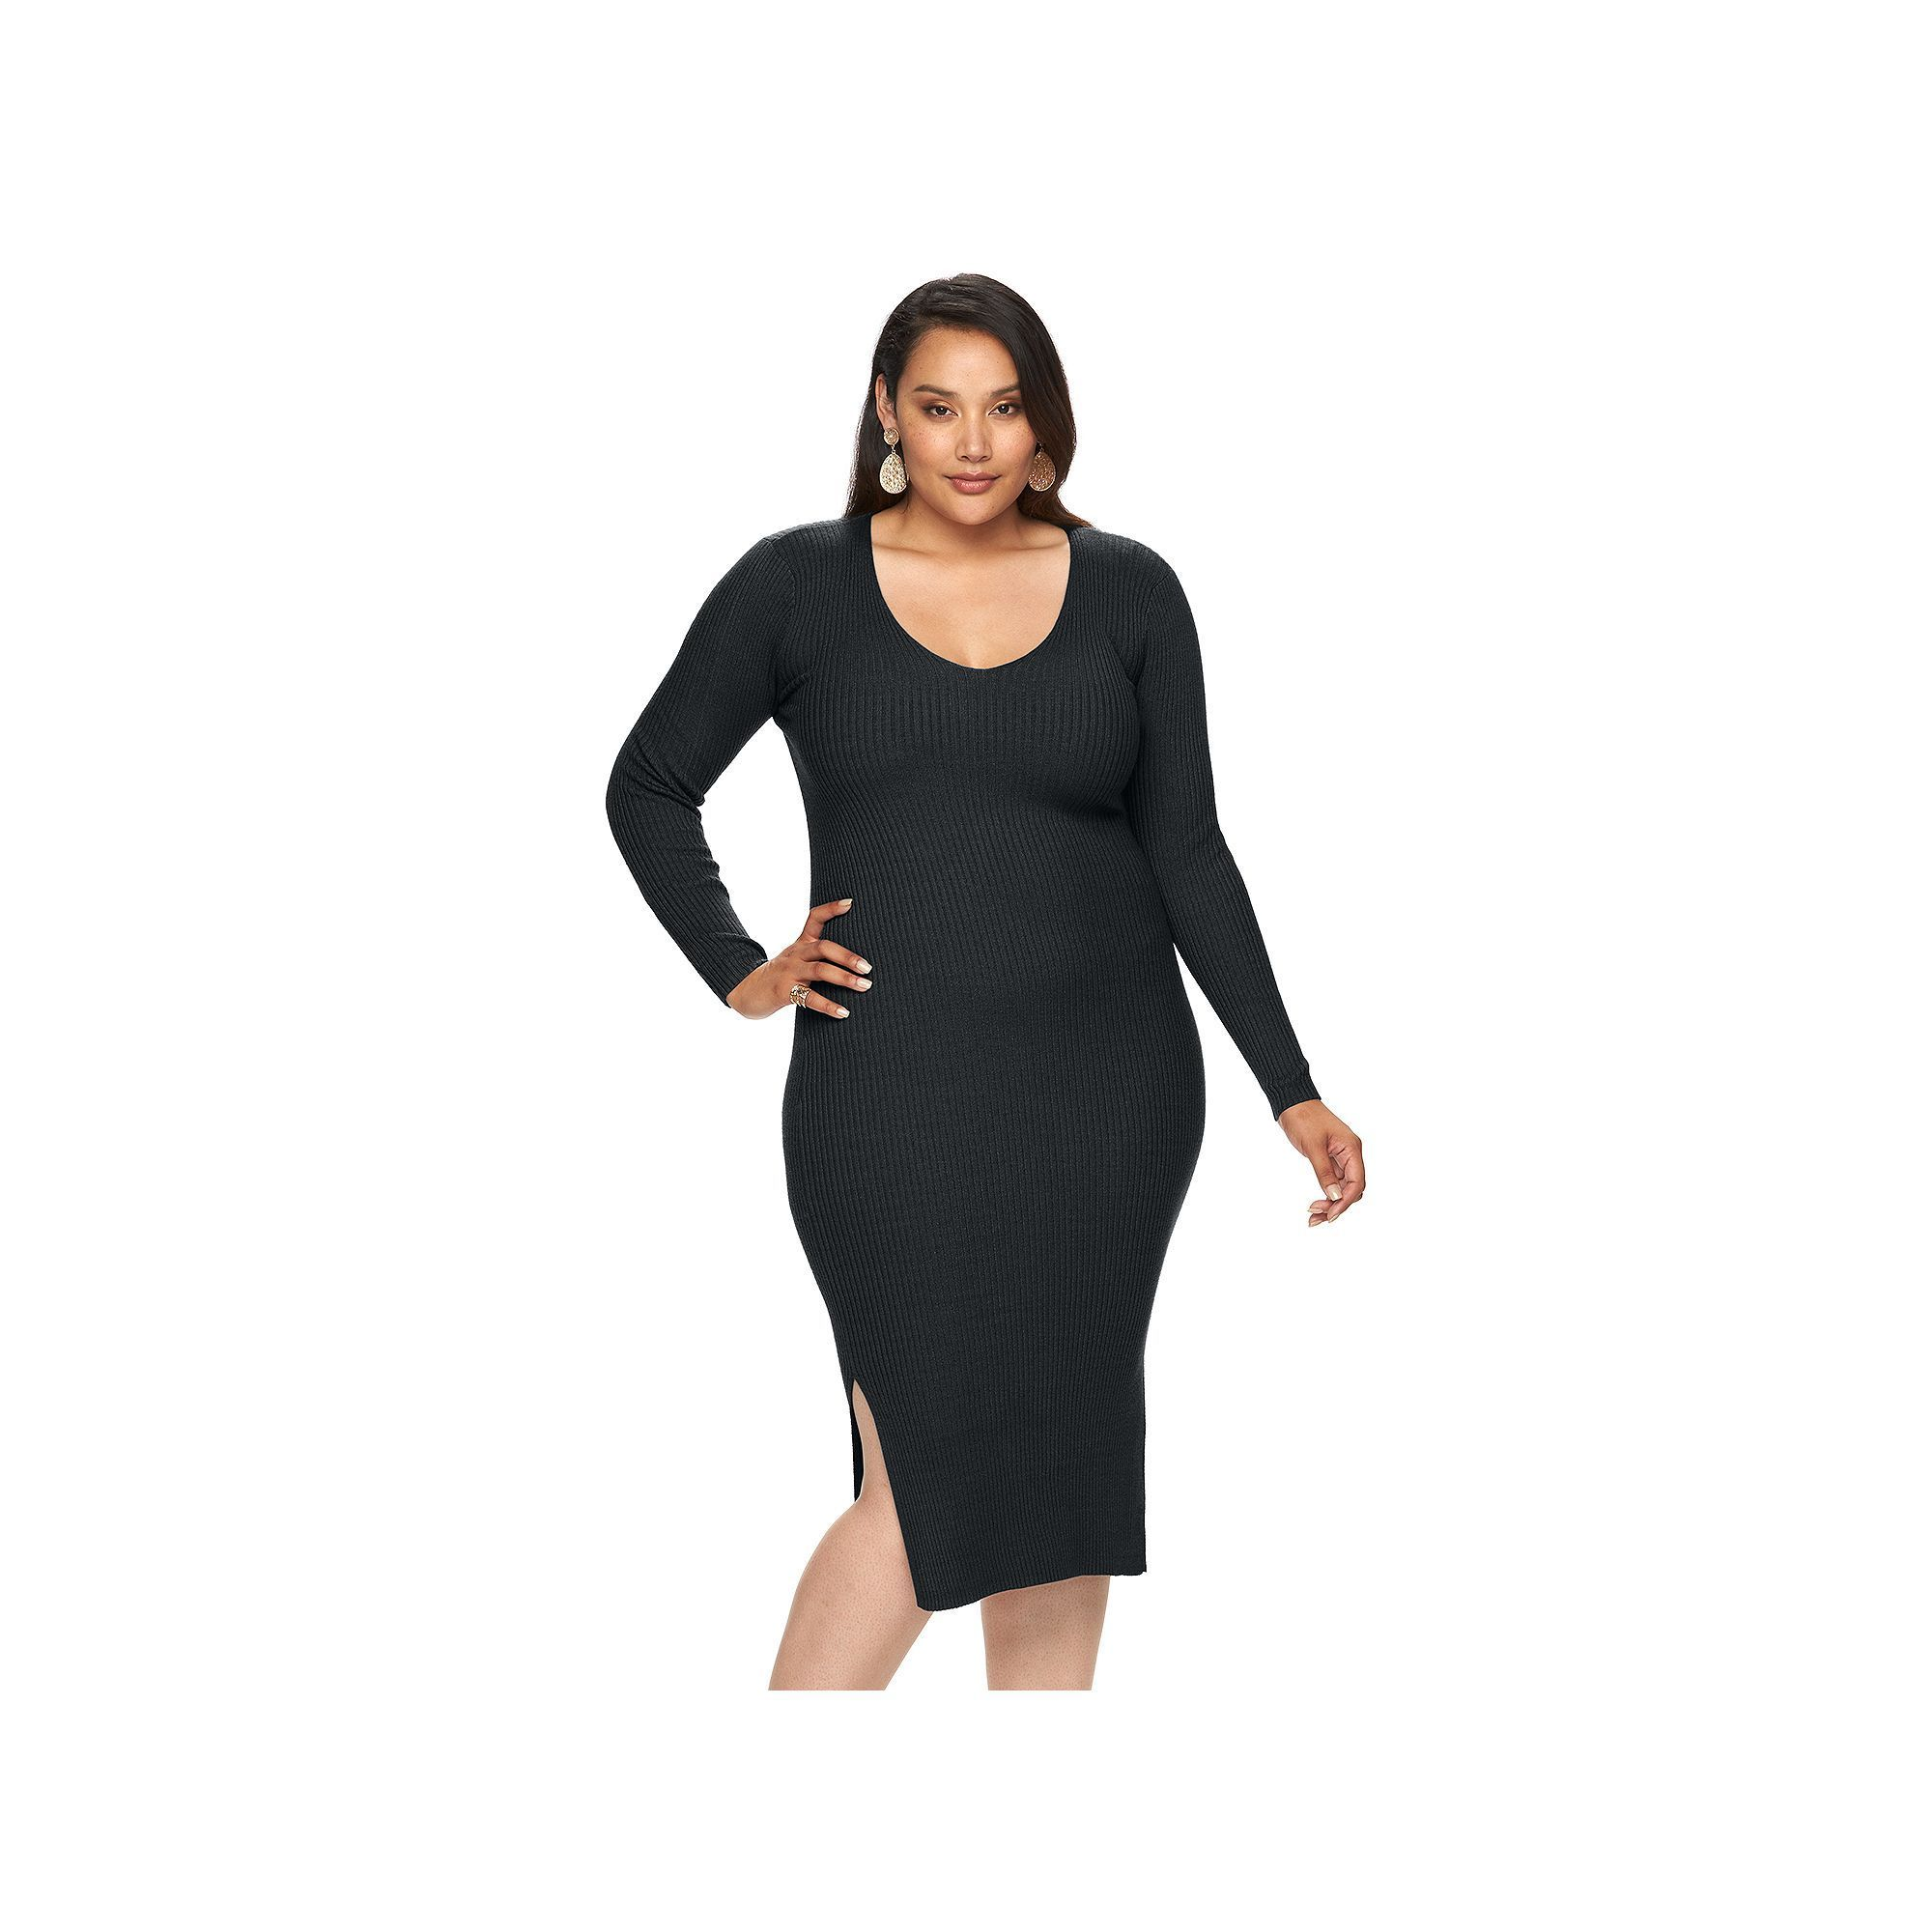 7e329cd8f8d Plus Size Jennifer Lopez Ribbed V-Neck Sweaterdress